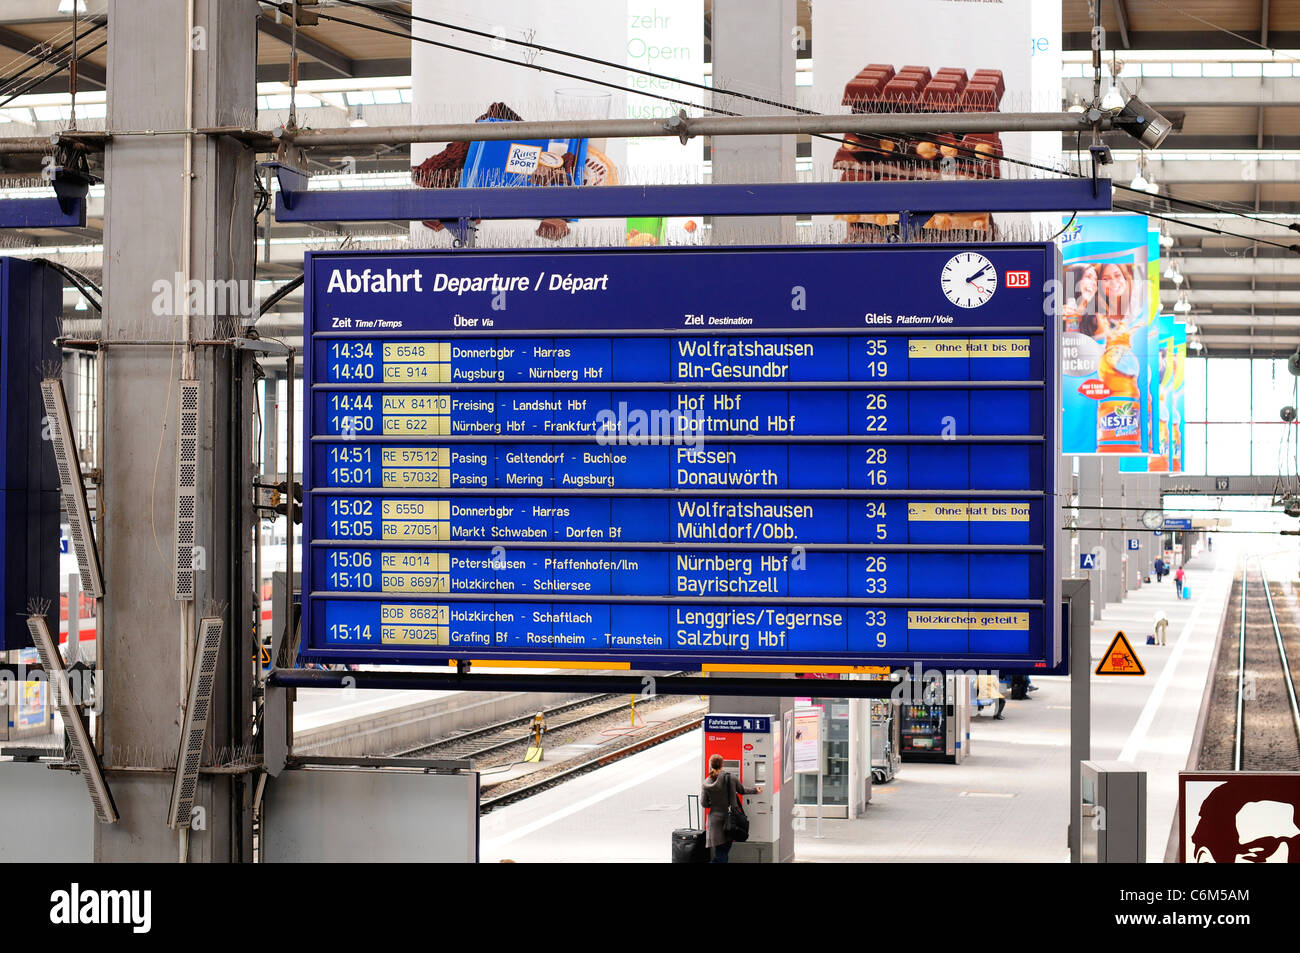 Departures board at München Hauptbahnhof railway station, Munich, Germany - Stock Image